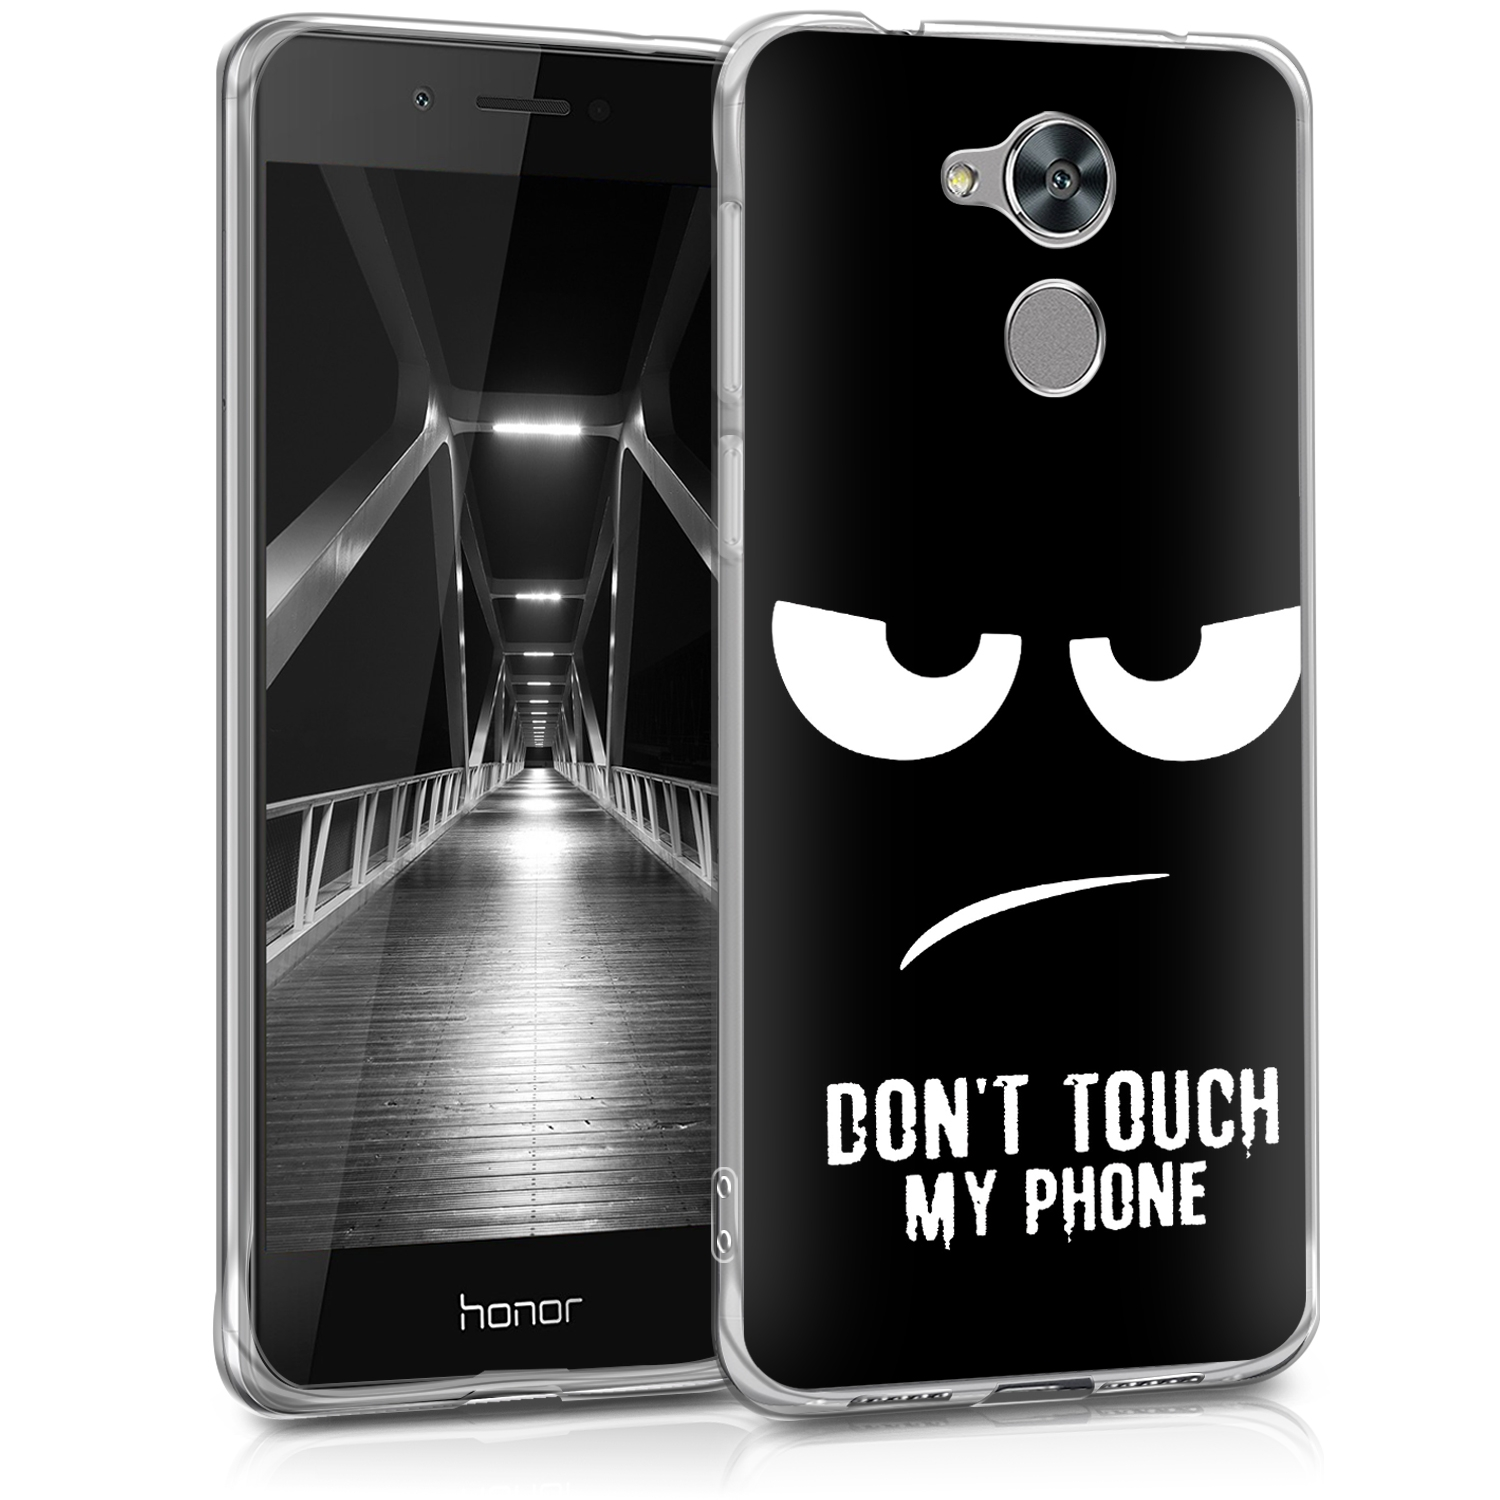 KW Θήκη Σιλικόνης Honor 6C Pro - Don't Touch My Phone (43558.02)